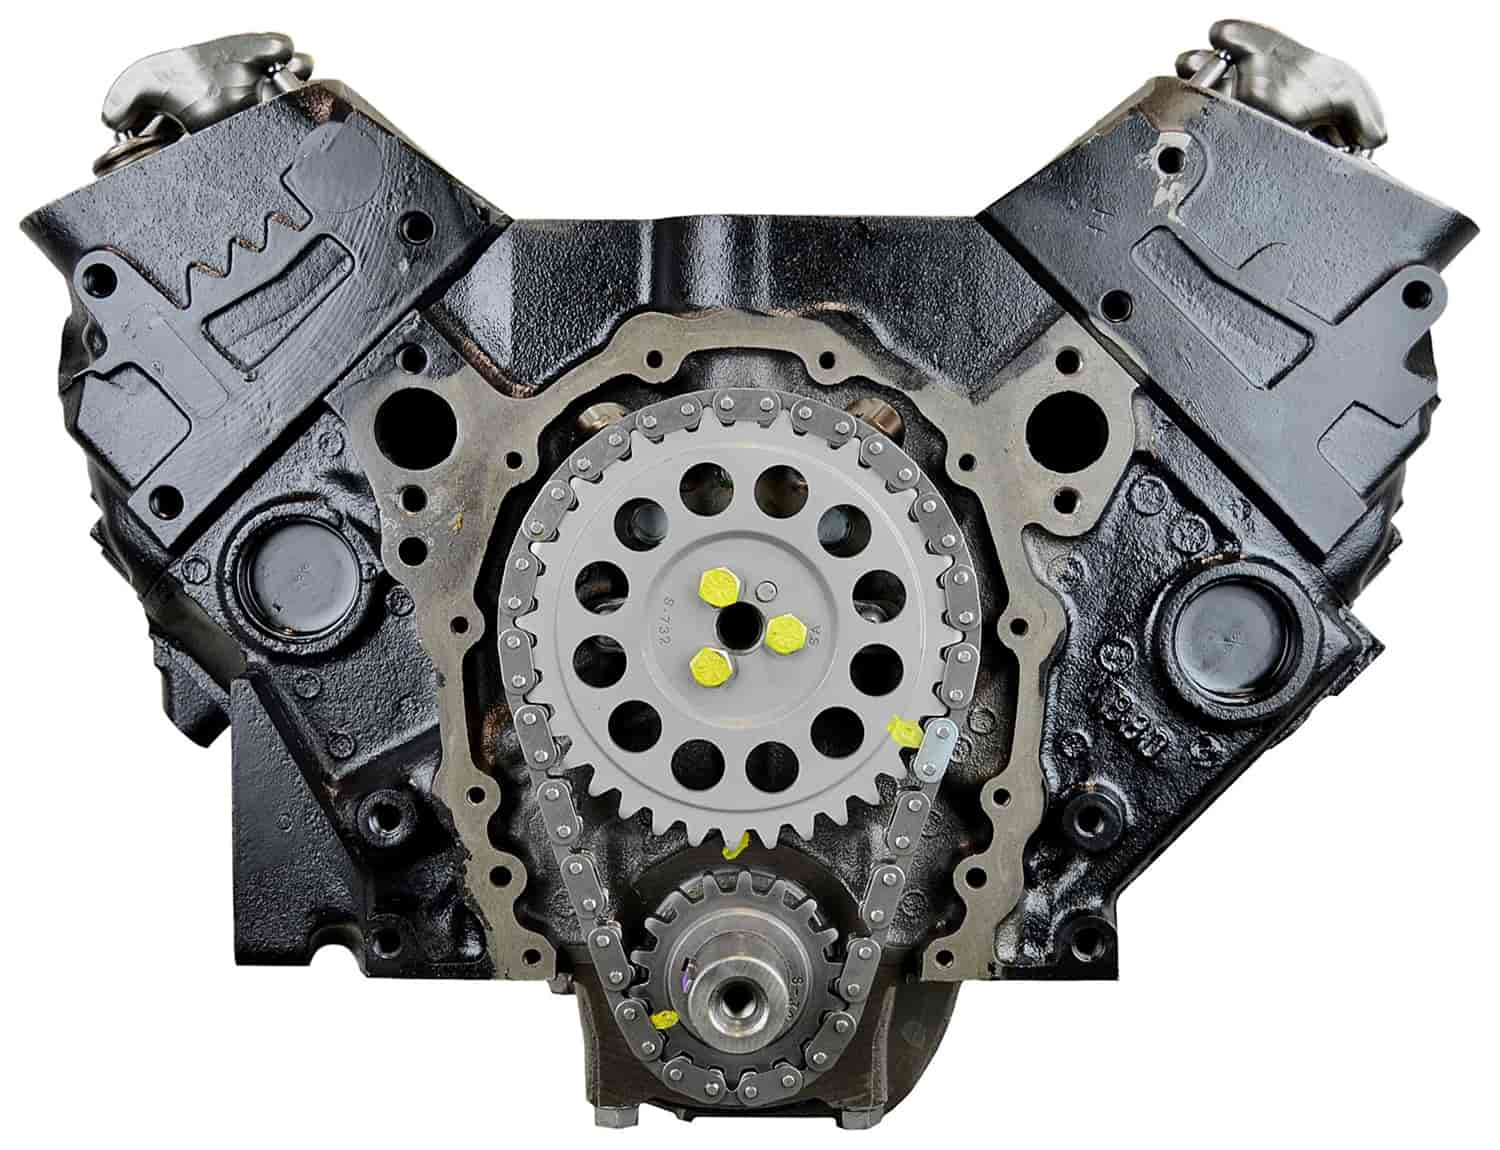 Atk Engines Dmh4 Remanufactured Crate Engine For Marine